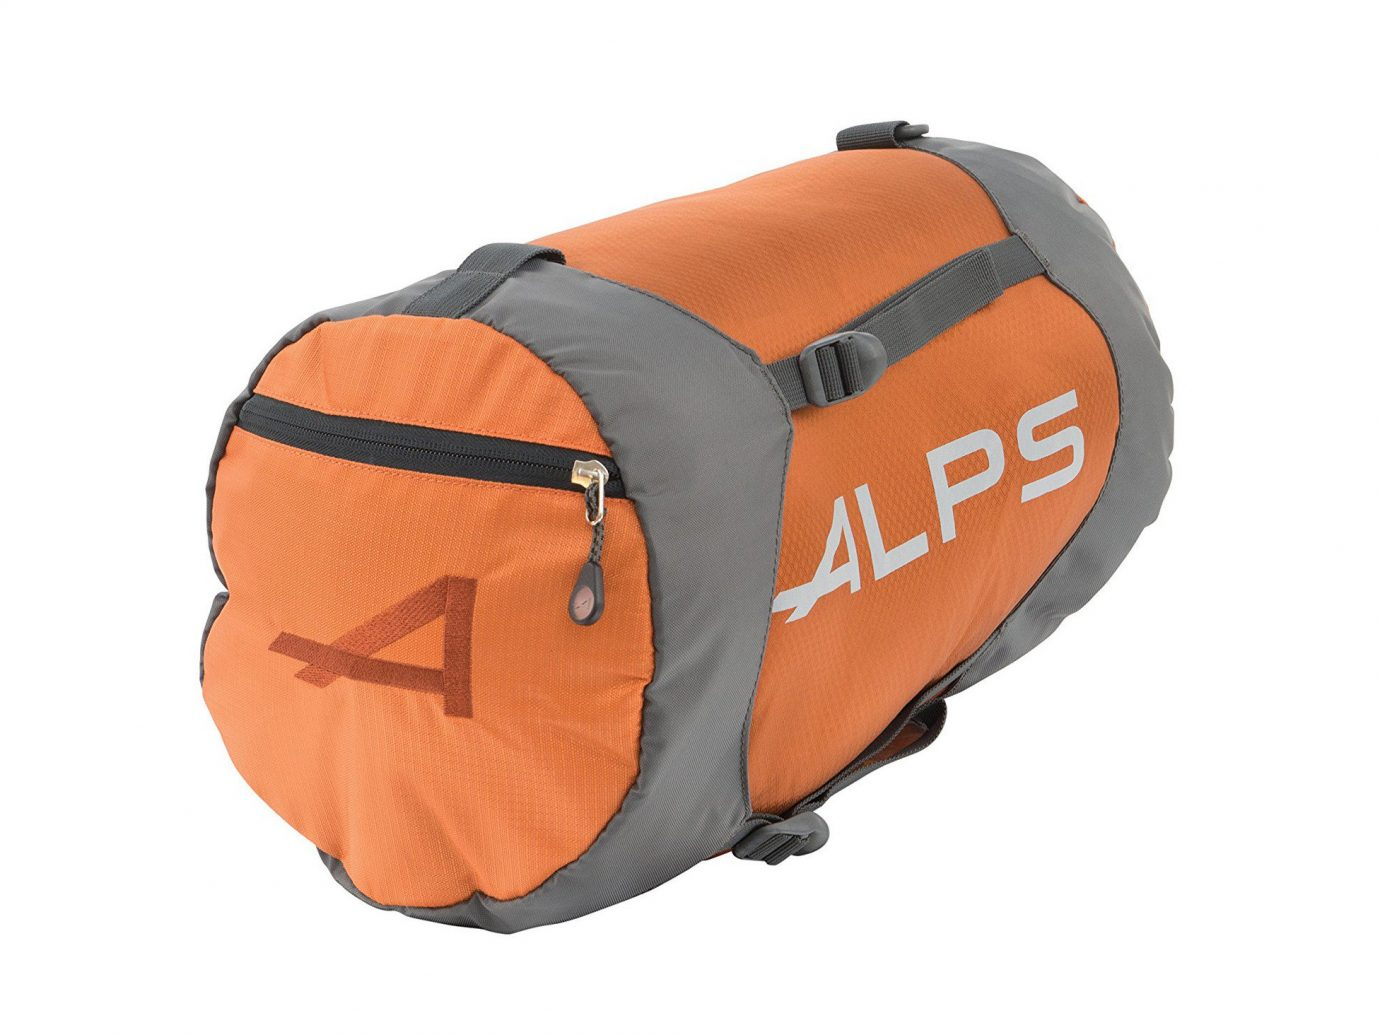 Packing Tips Travel Tips orange product bag accessory product design